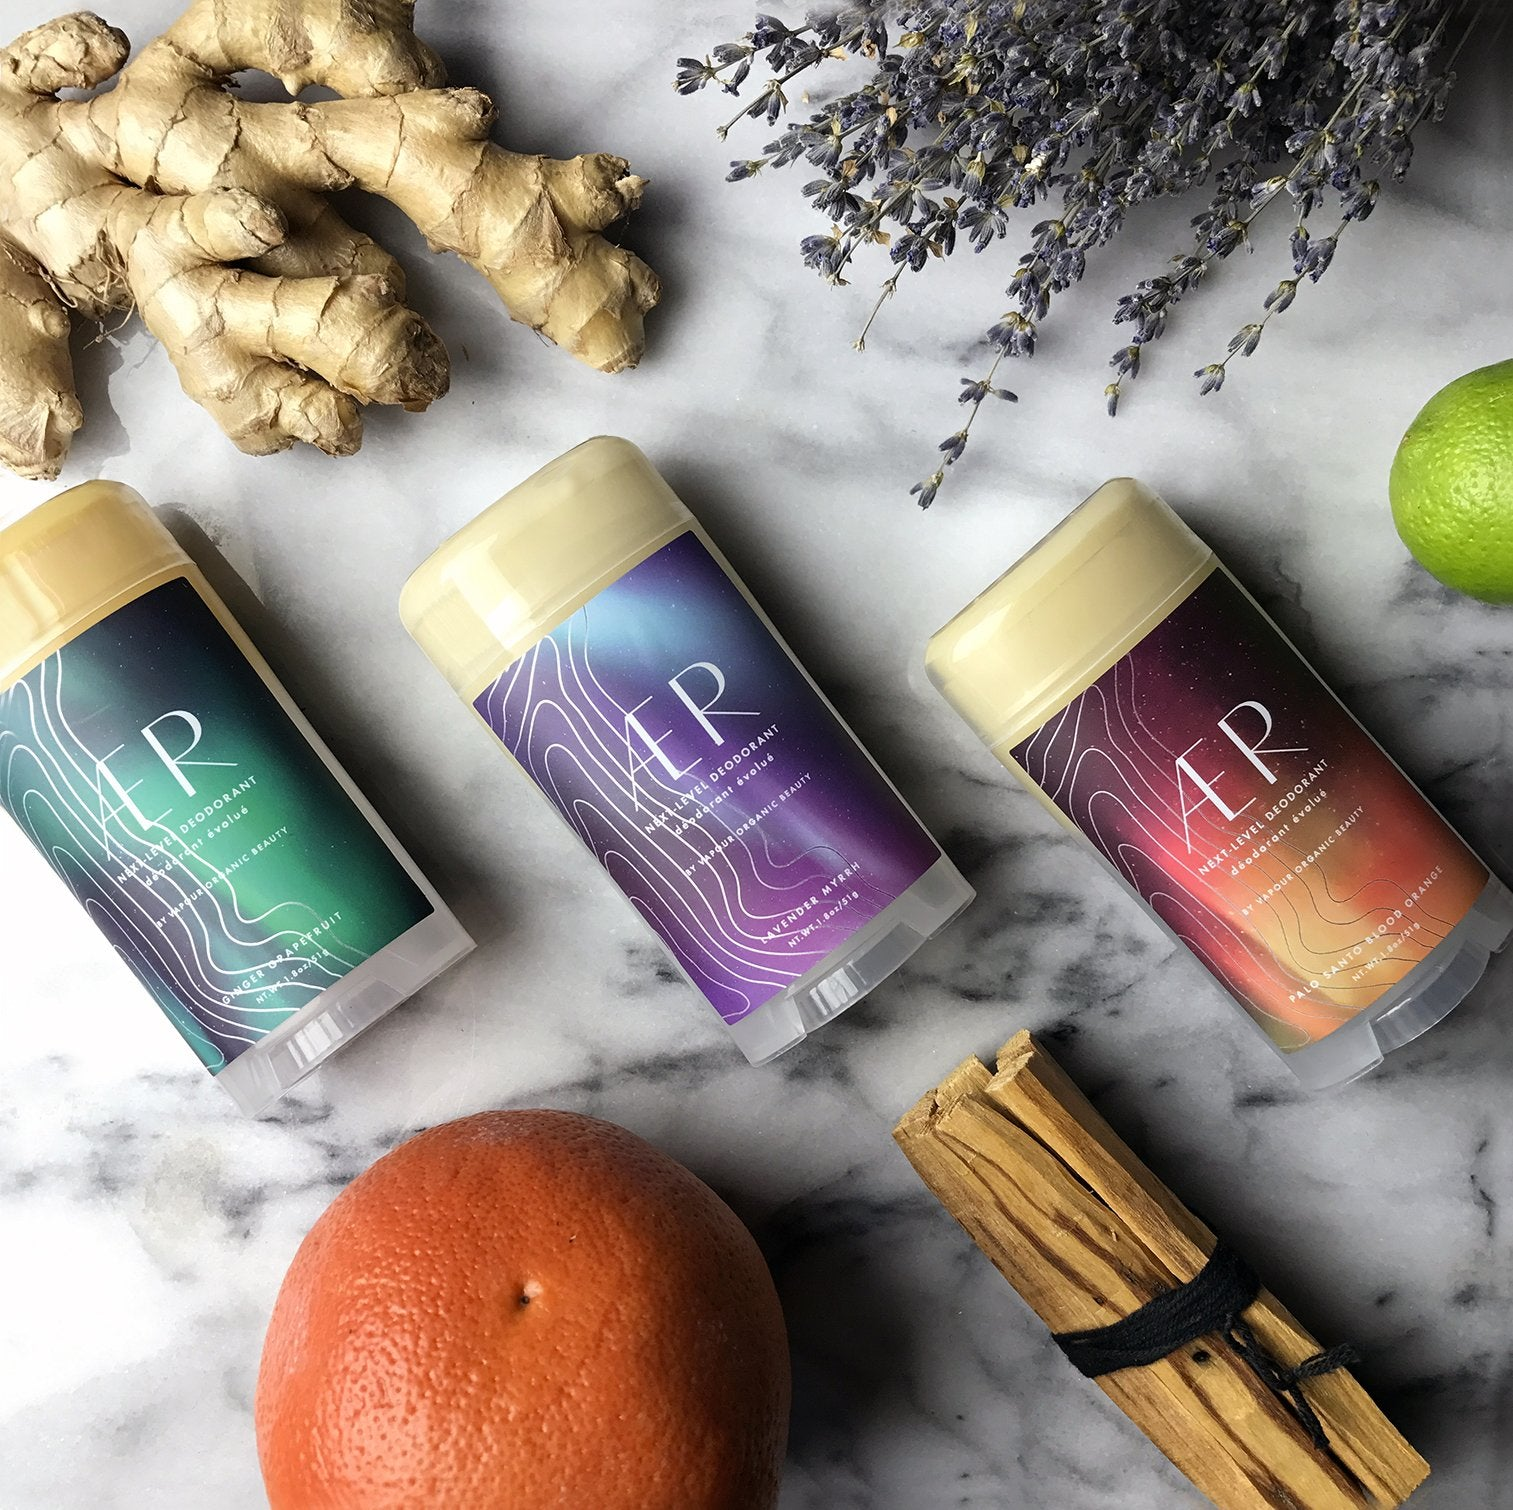 AER Next-Level Deodorant - Palo Santo Blood Orange